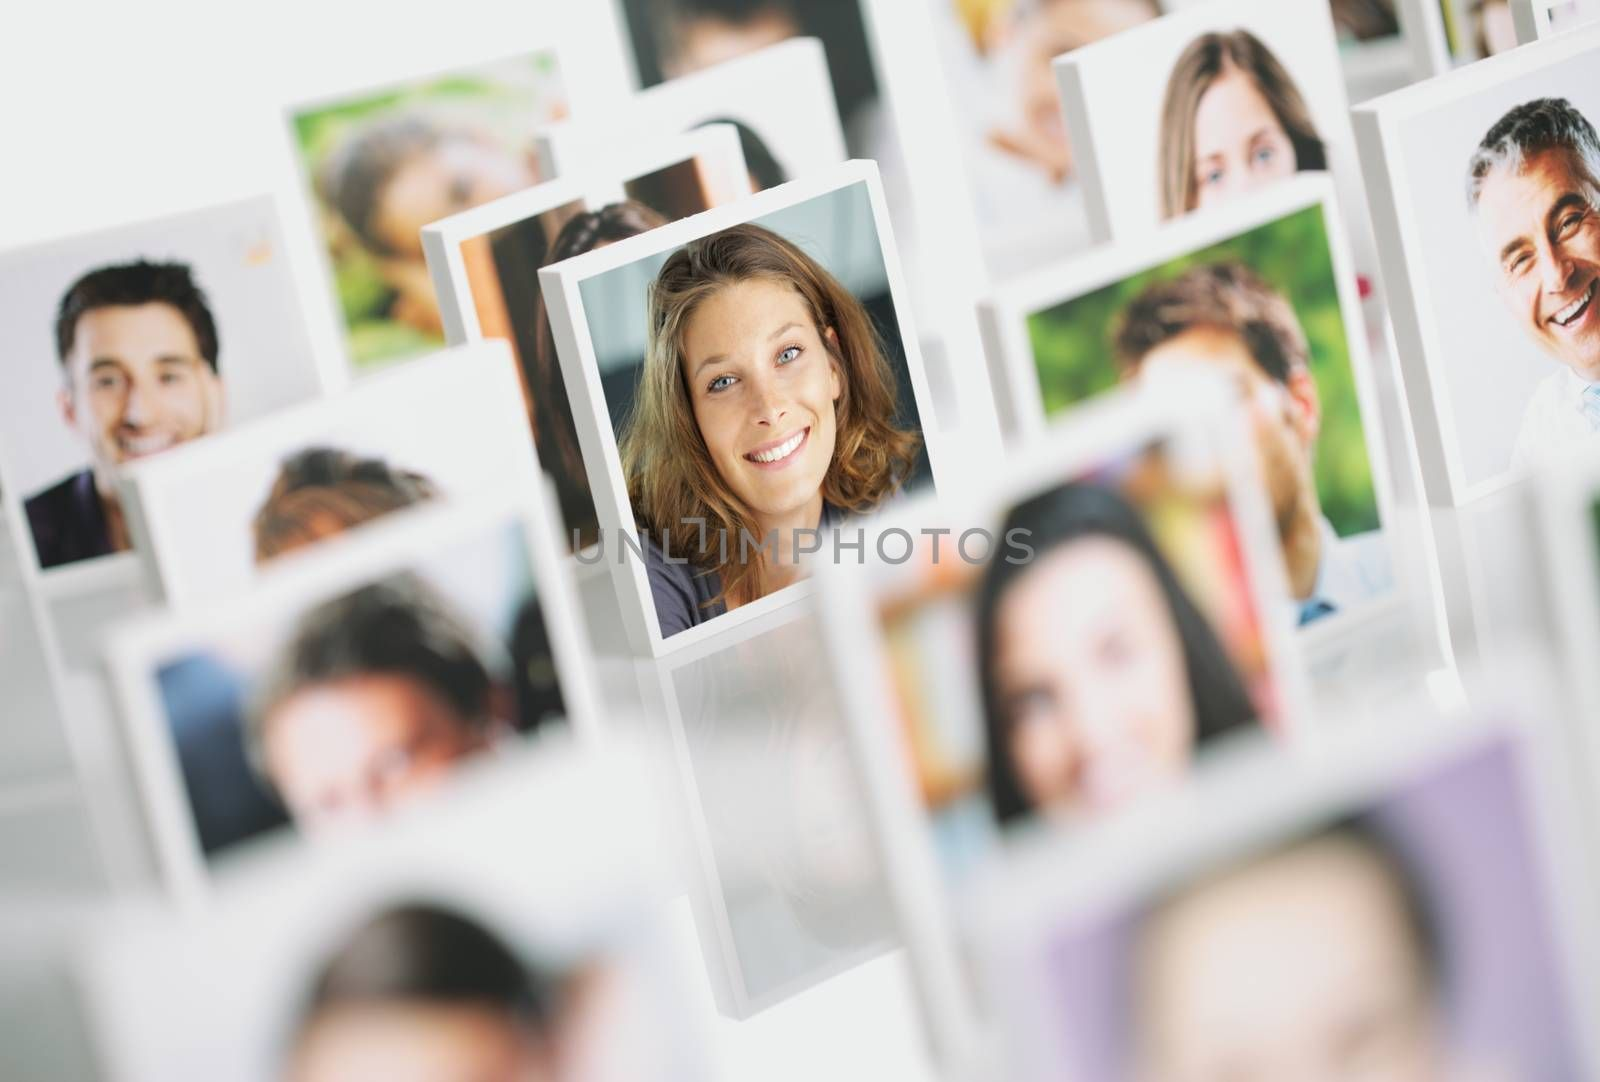 Portraits of a group of happy people